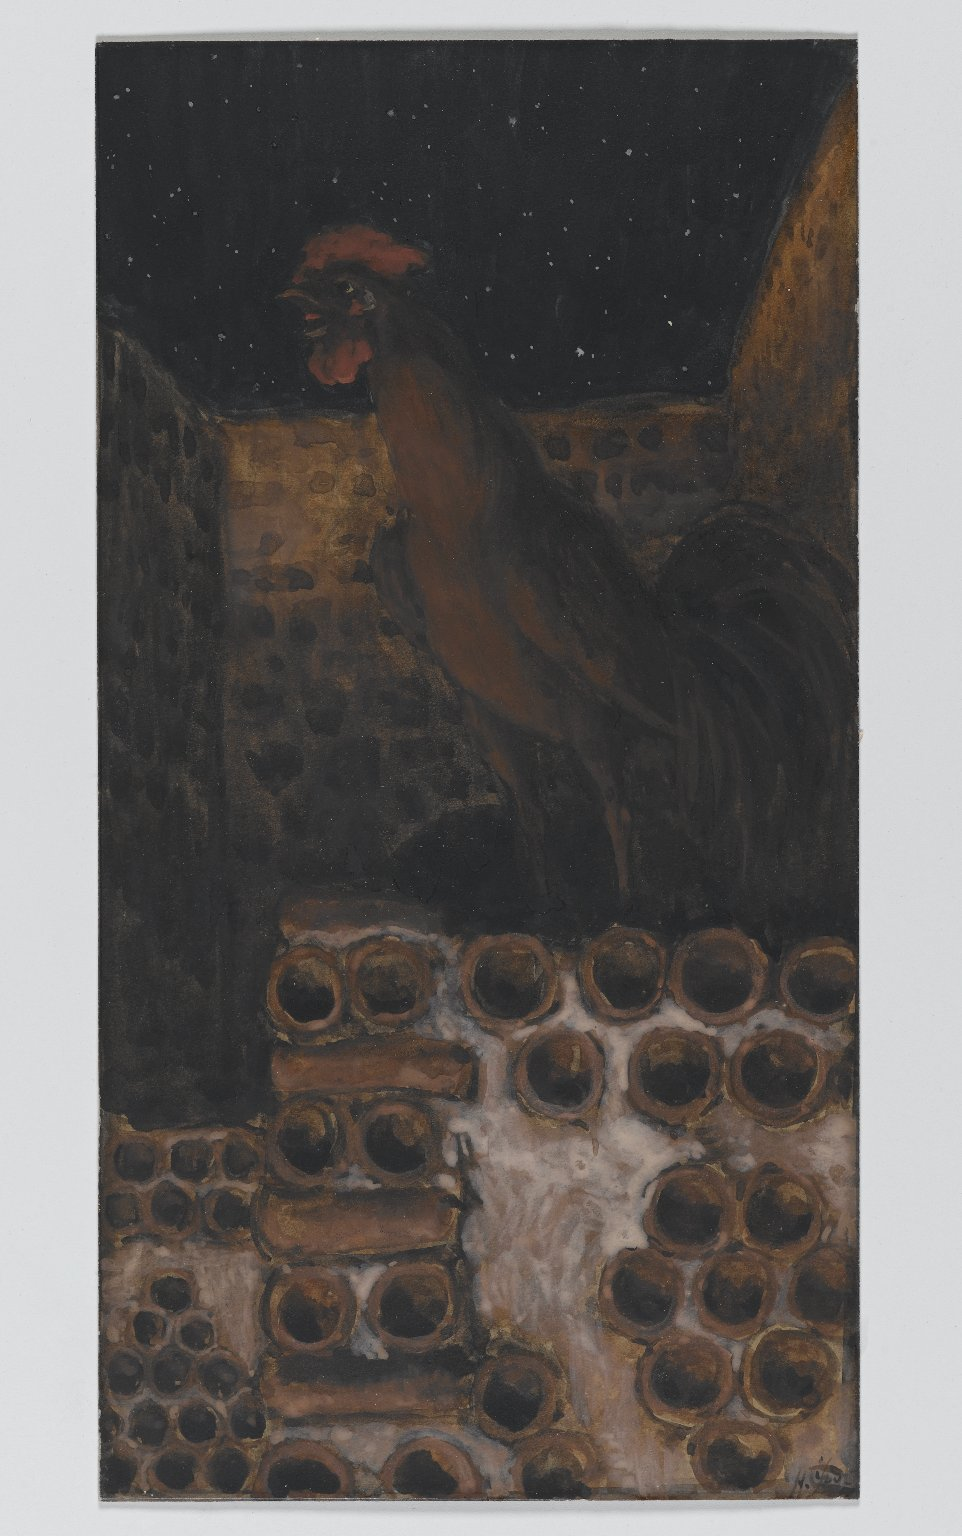 Brooklyn Museum: The Cock Crowed (Le coq chanta)